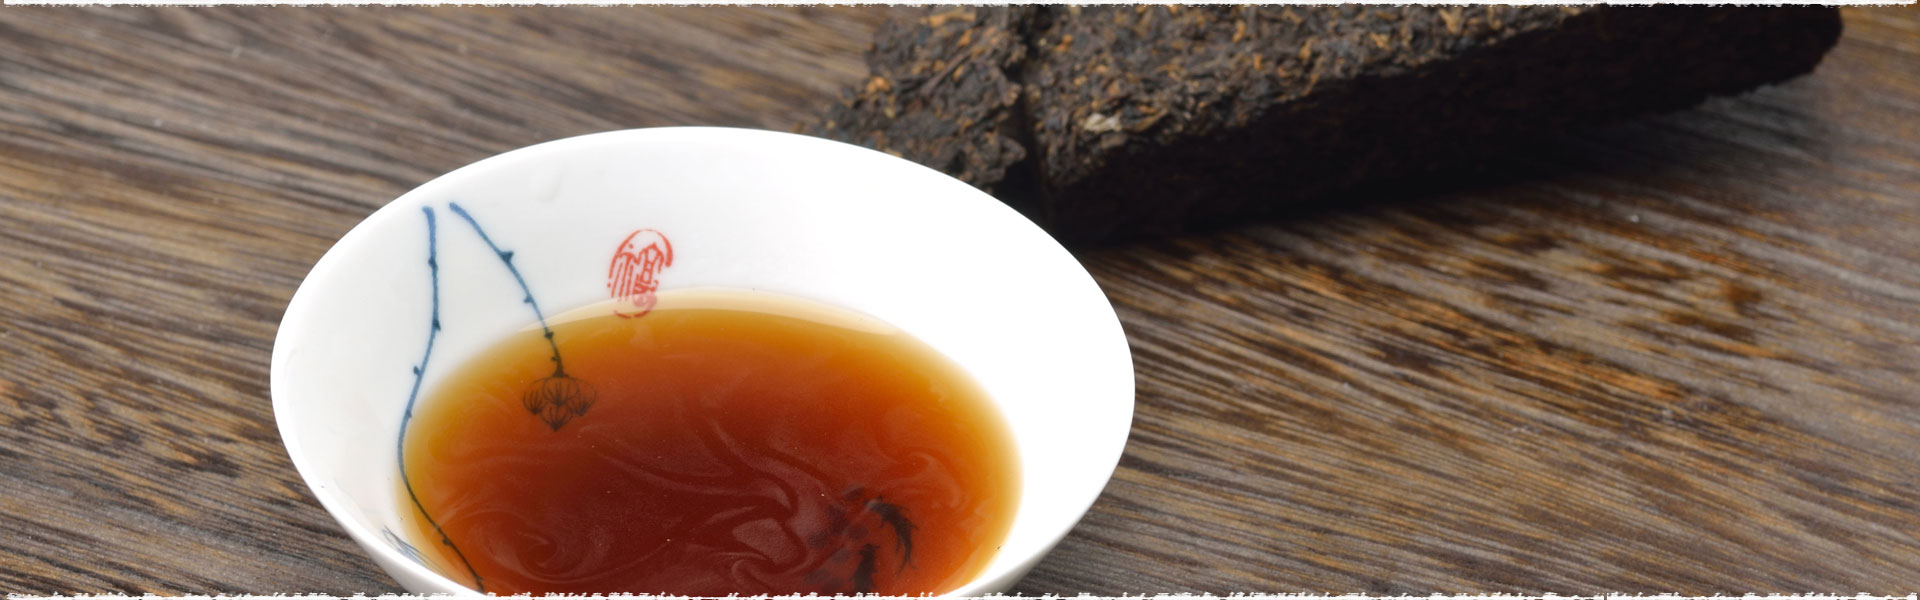 How to Properly Loosen and Pry Pu-erh Tea